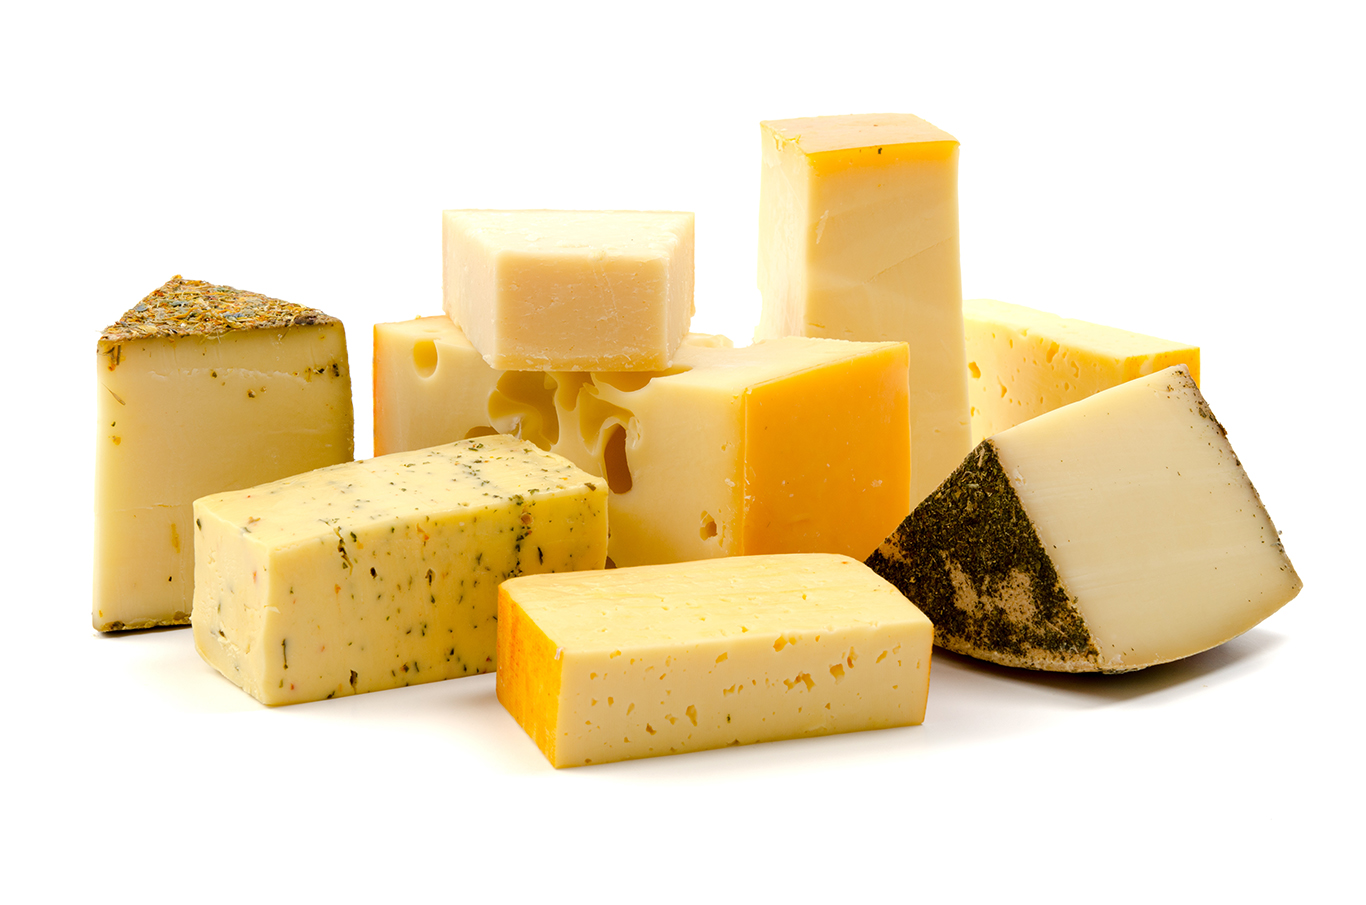 Cheeses on white backgrouns